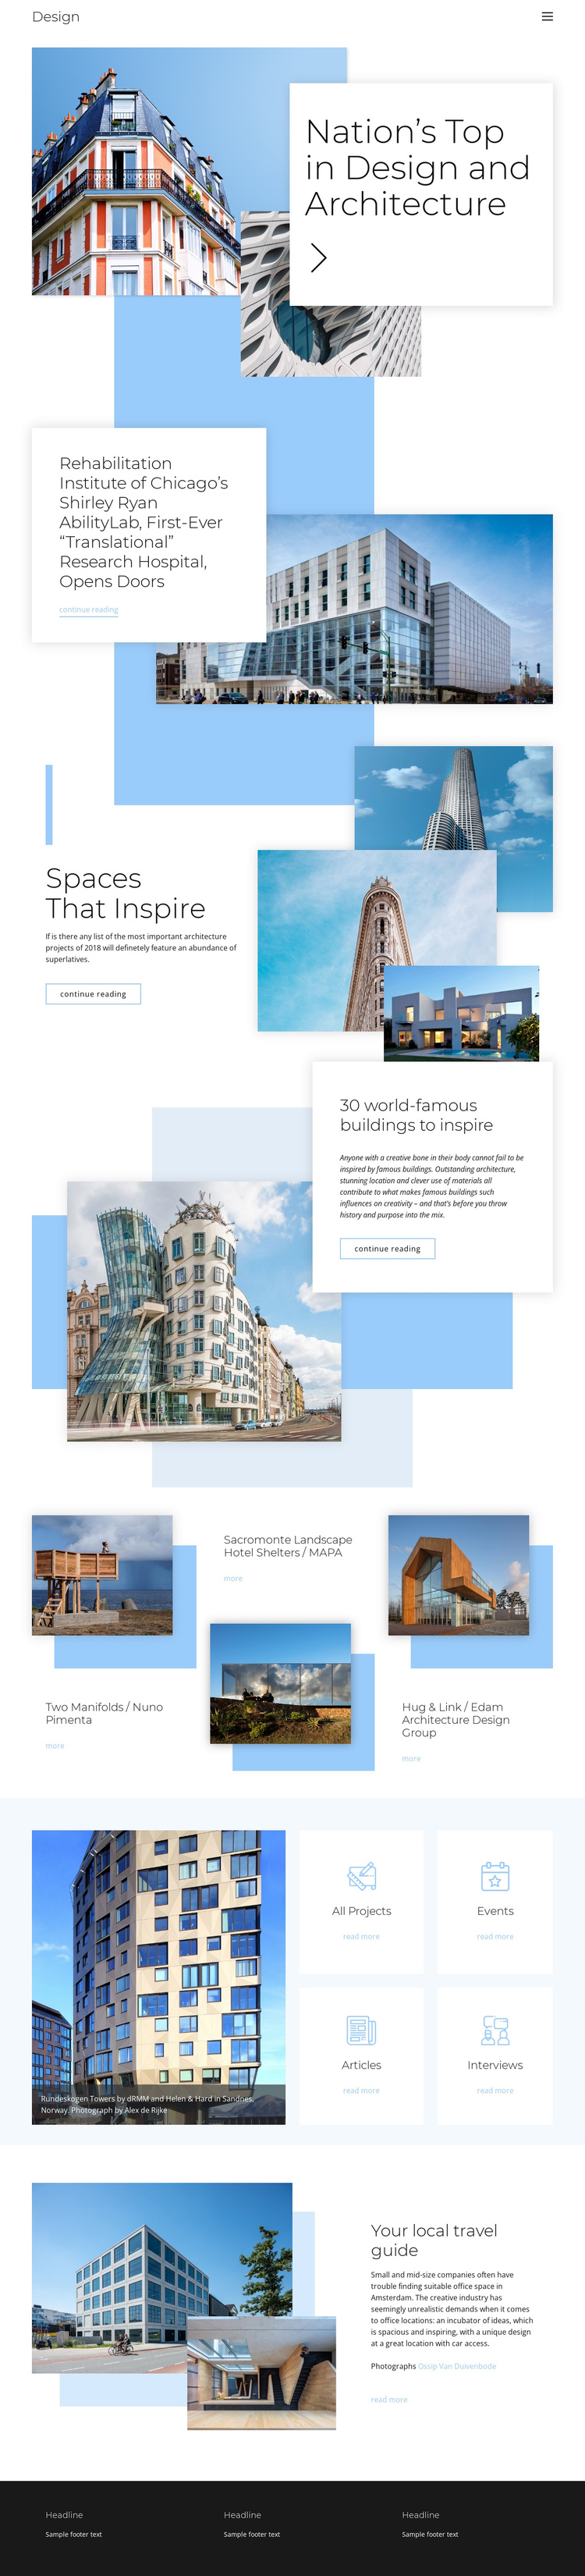 Rating for architecture Website Builder Software